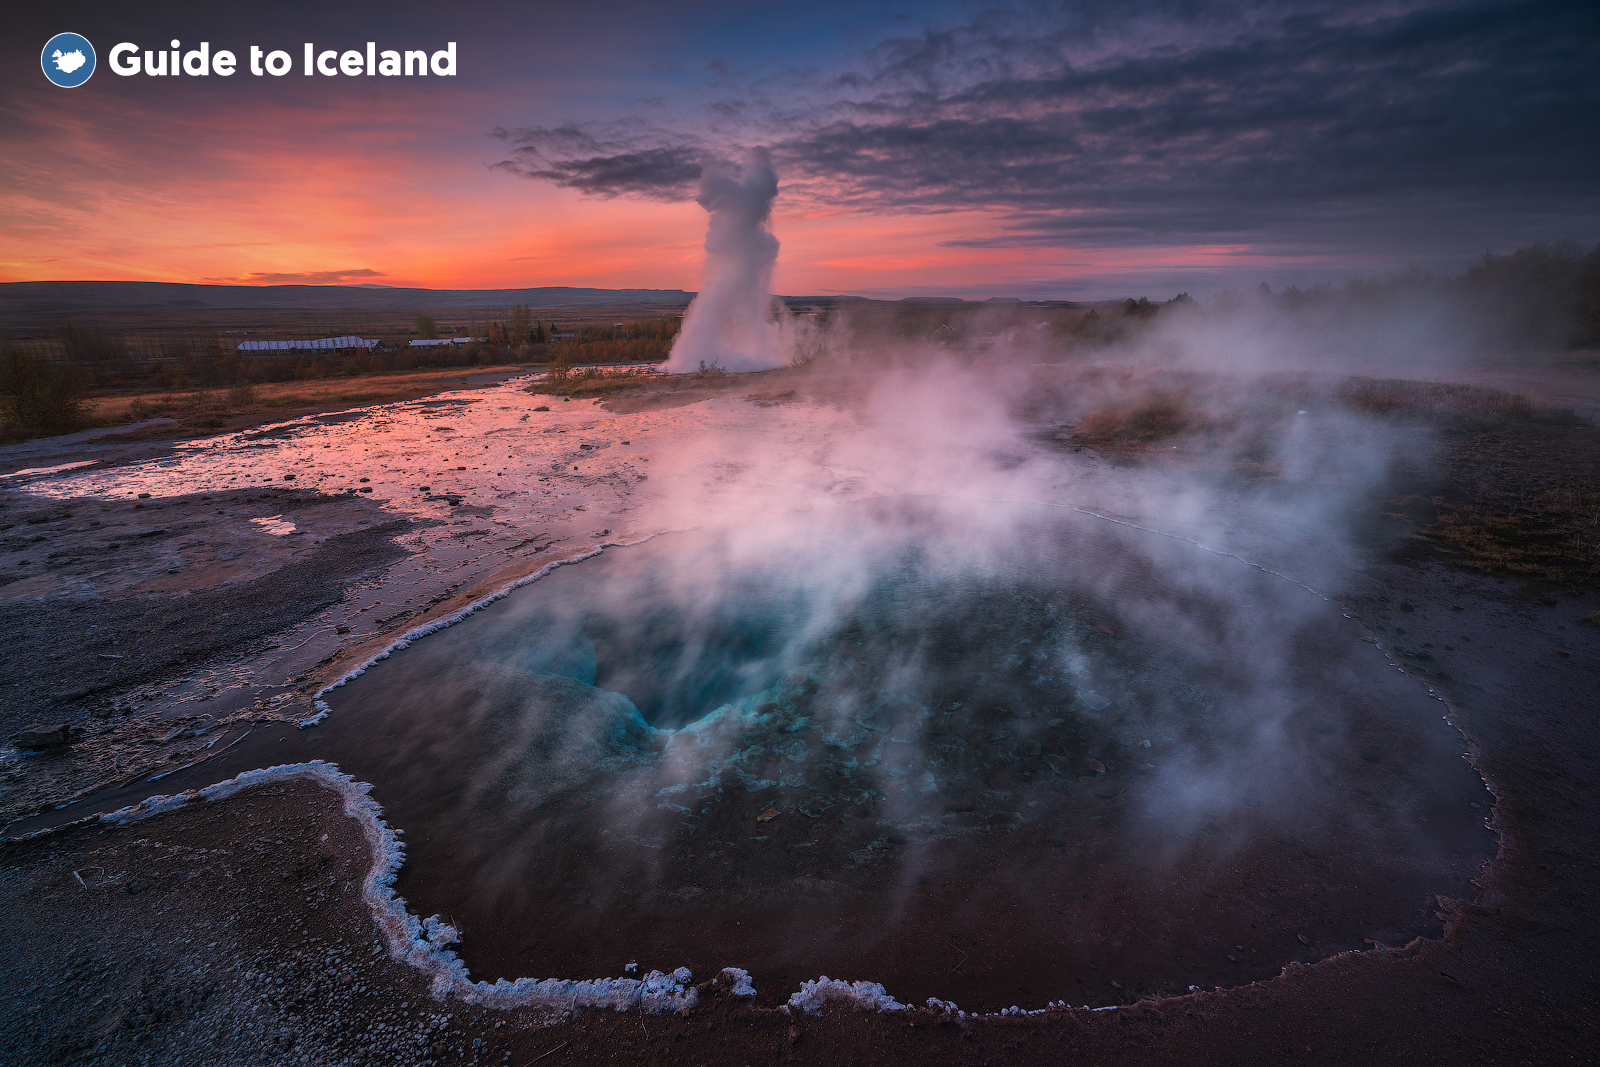 The rising steam from the Geysir Geothermal Area which is part of the famous Golden Circle Tourist Route in South West Iceland.